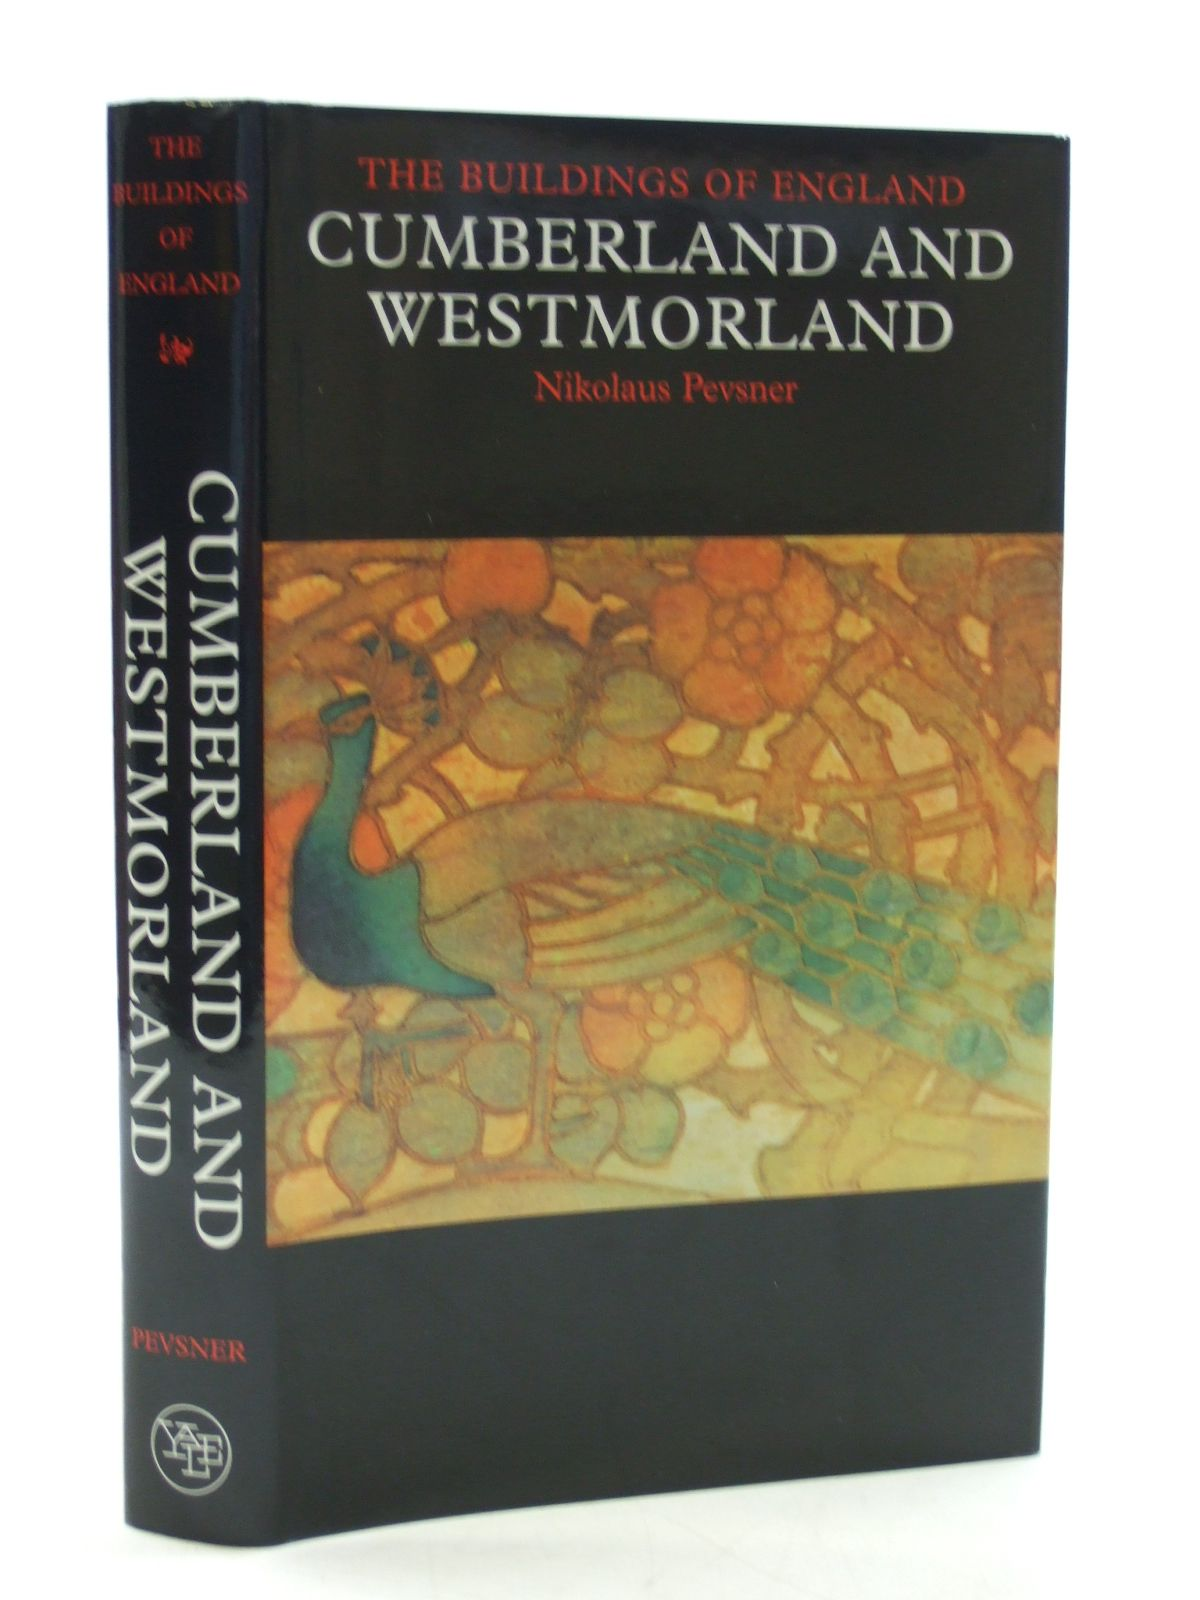 Photo of CUMBERLAND AND WESTMORLAND (BUILDINGS OF ENGLAND) written by Pevsner, Nikolaus published by Yale University Press (STOCK CODE: 1604539)  for sale by Stella & Rose's Books